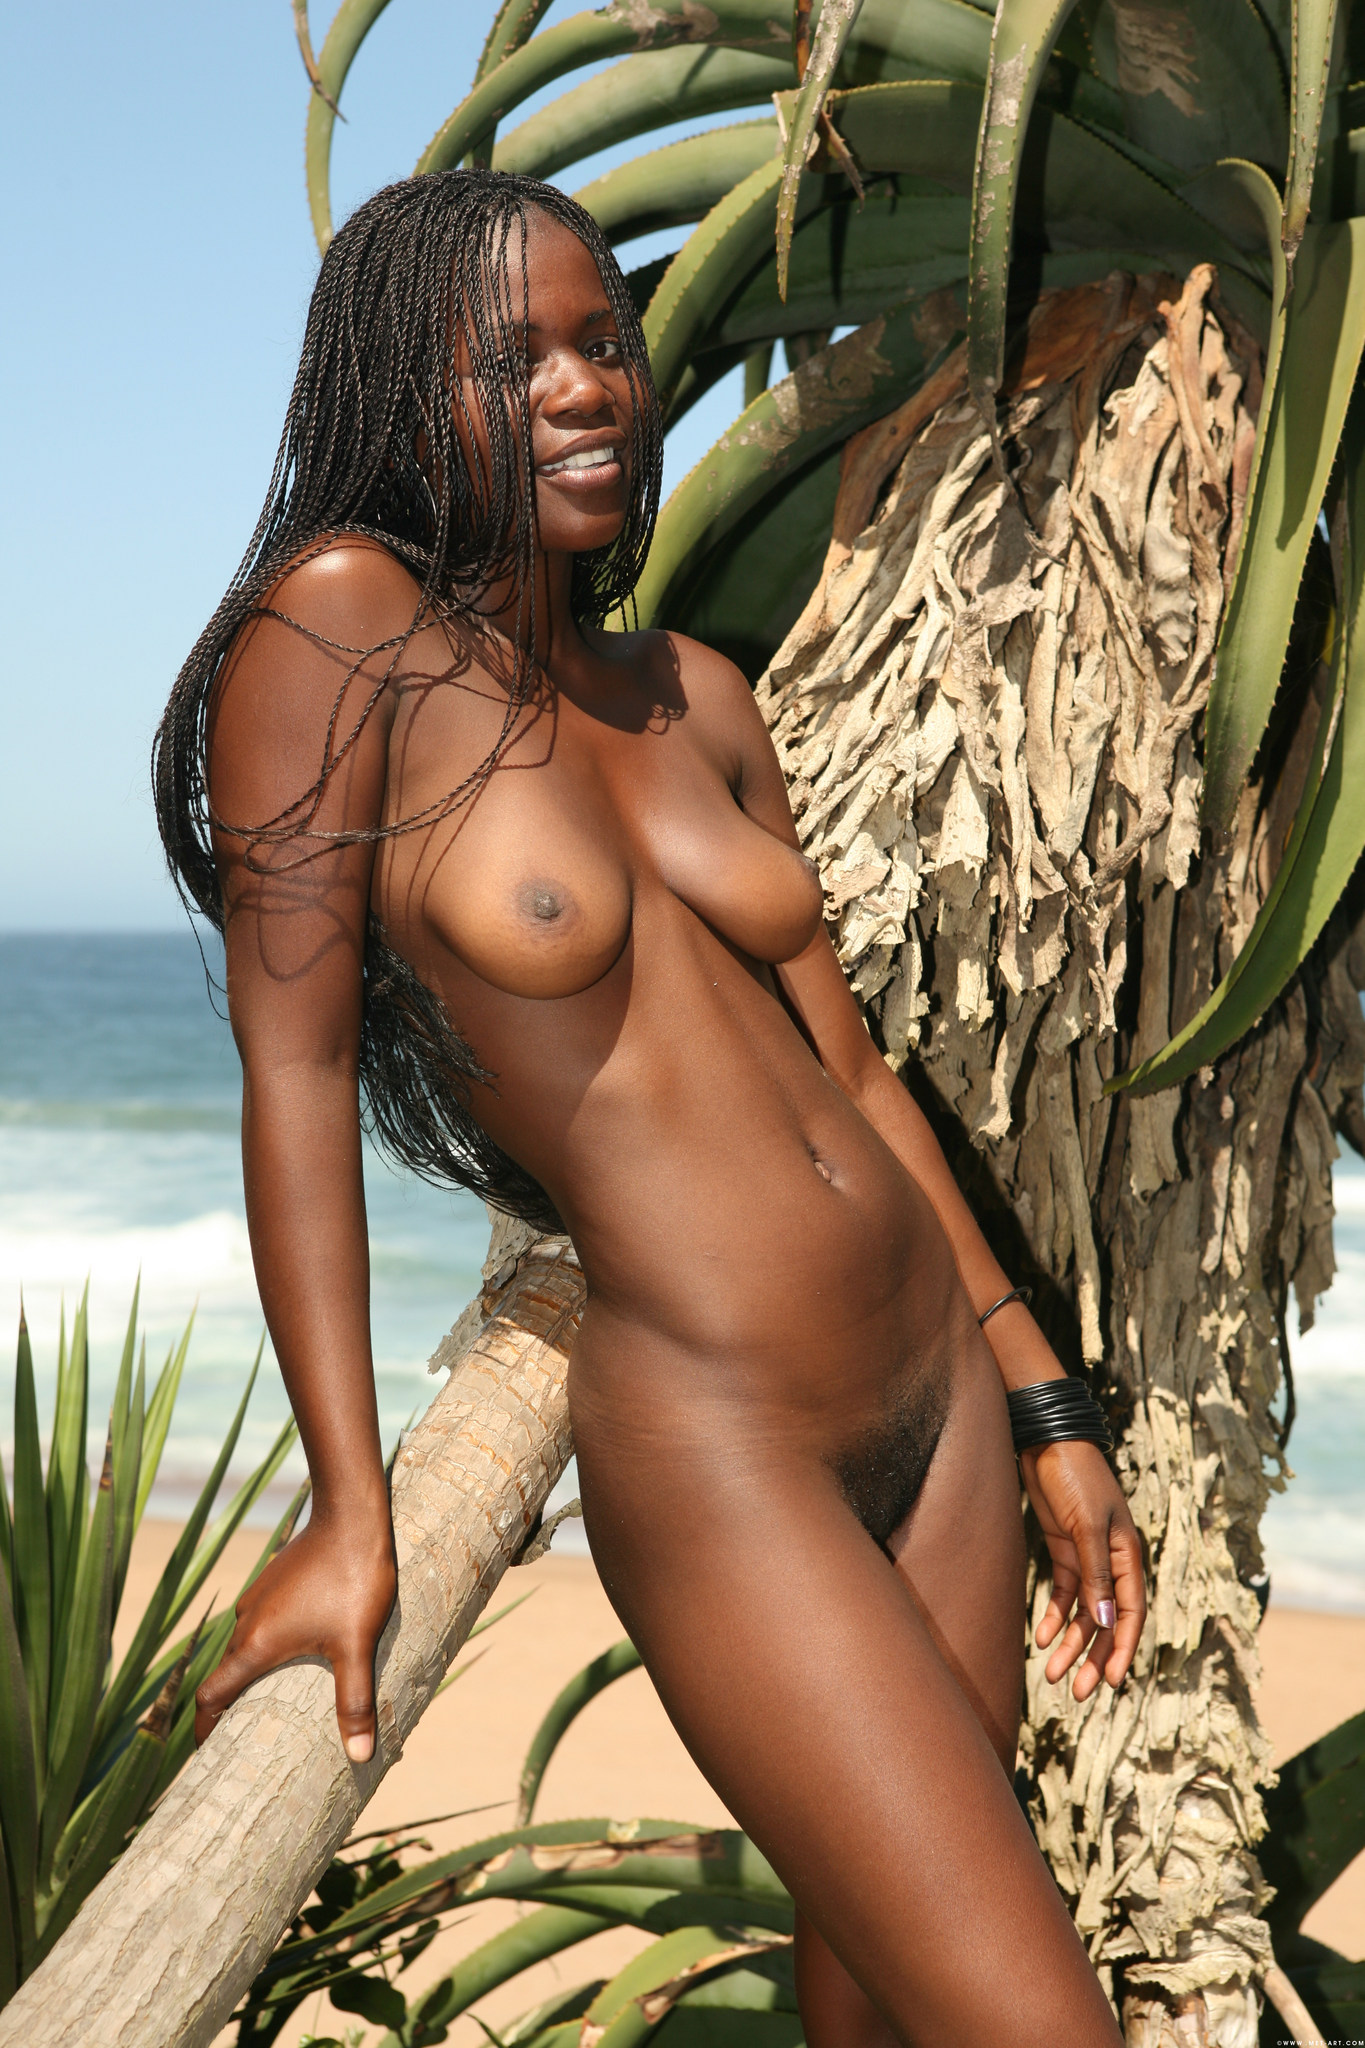 Clinton naked caribbean girls photo island porn pics